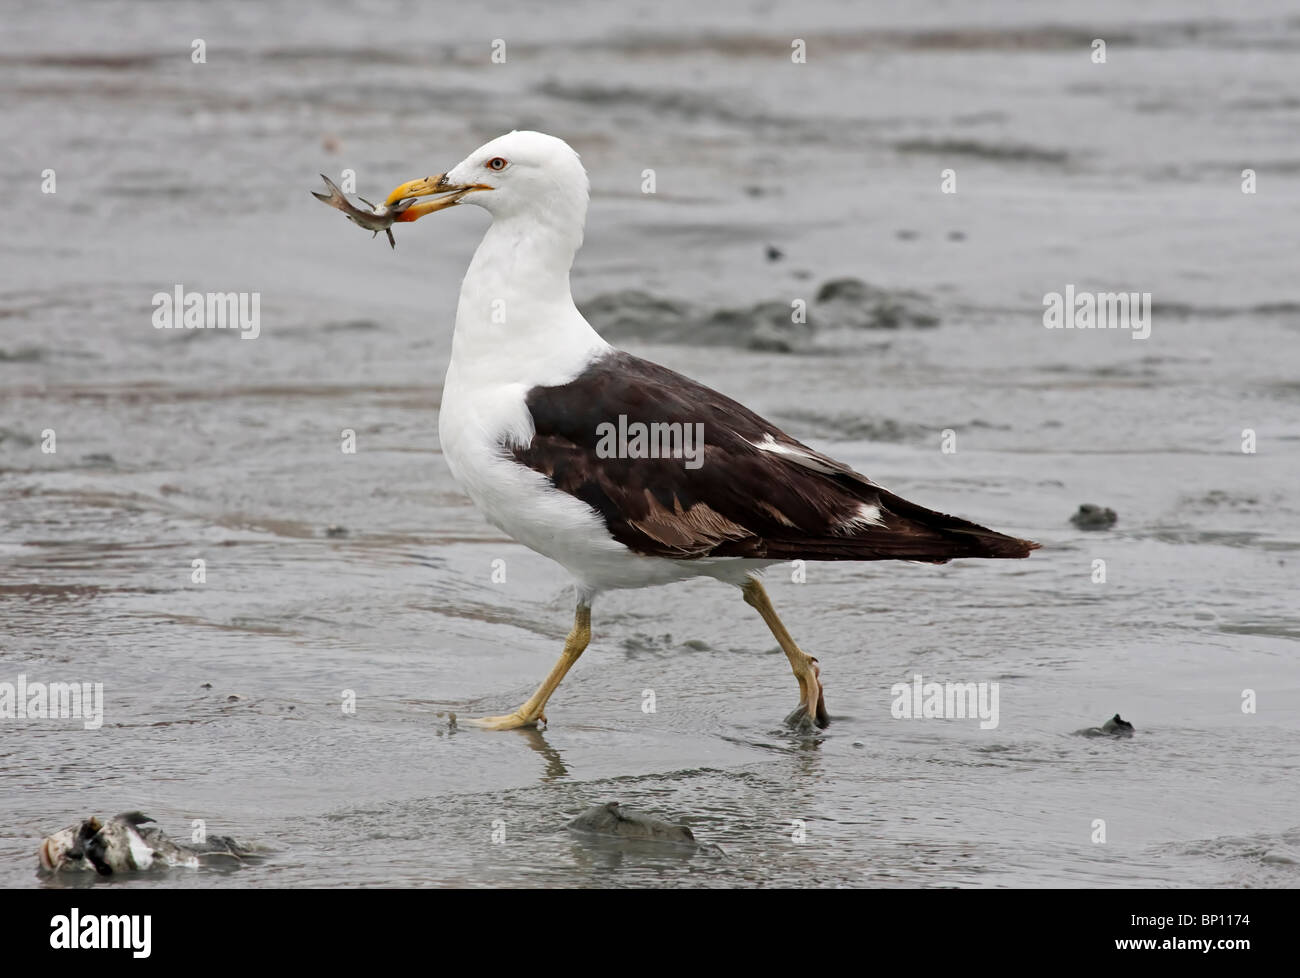 kelp gull (Larus dominicanus) single adult walking with fish in its mouth, on beach, Itajai, Brazil, South America - Stock Image